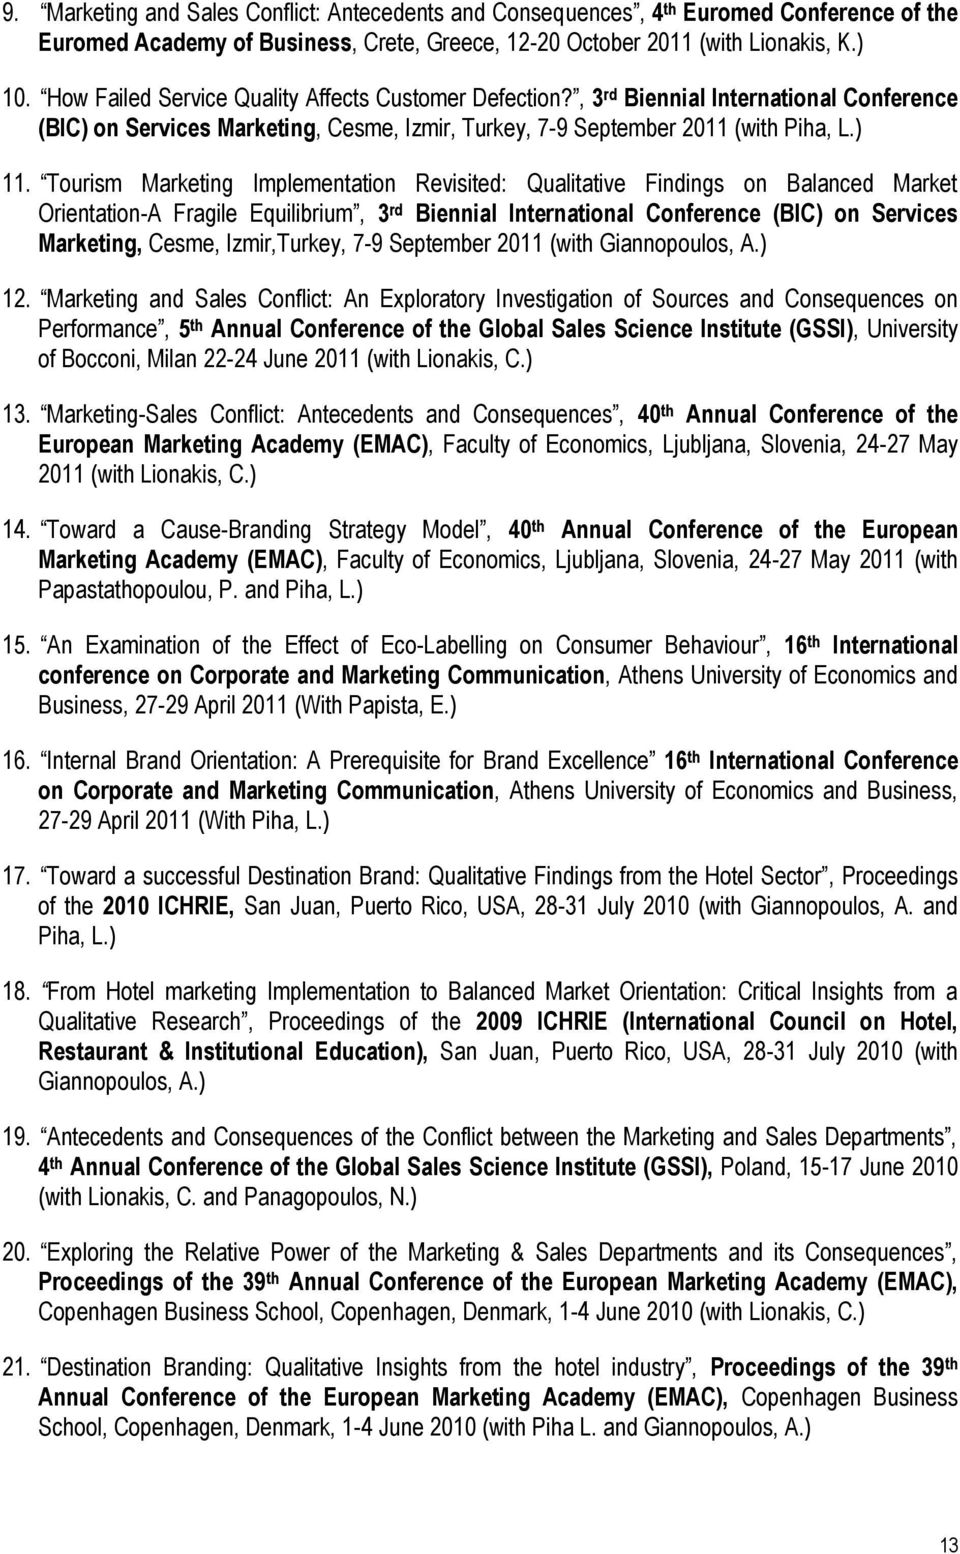 Tourism Marketing Implementation Revisited: Qualitative Findings on Balanced Market Orientation-A Fragile Equilibrium, 3 rd Biennial International Conference (BIC) on Services Marketing, Cesme,